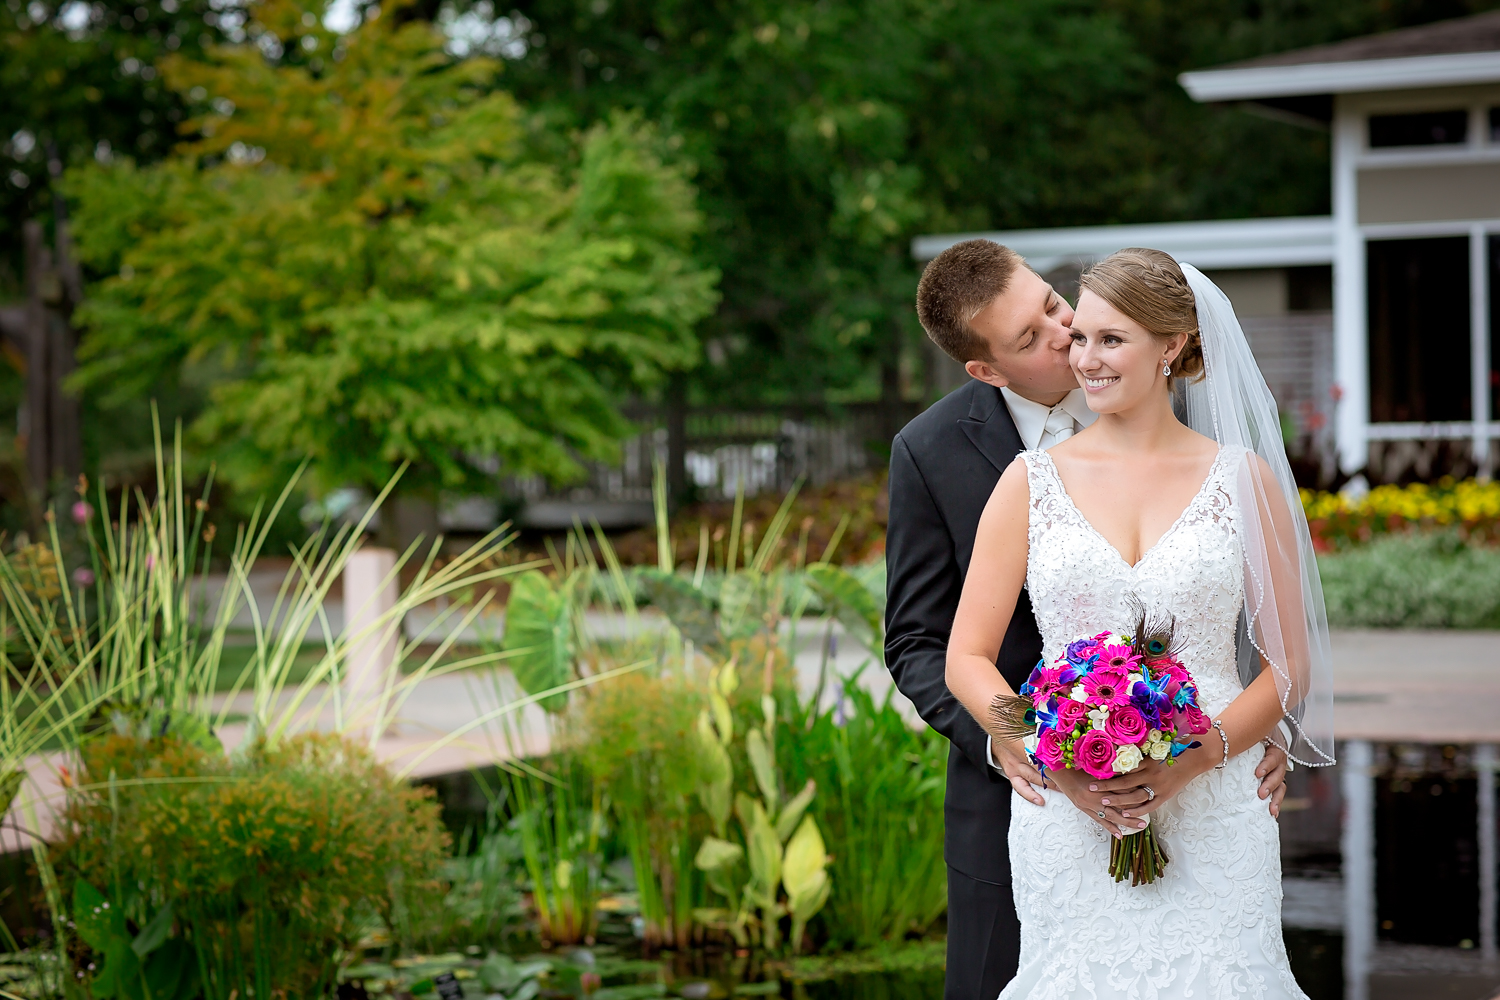 Emma & Blair | Royal Botanical Gardens Wedding | Burlington